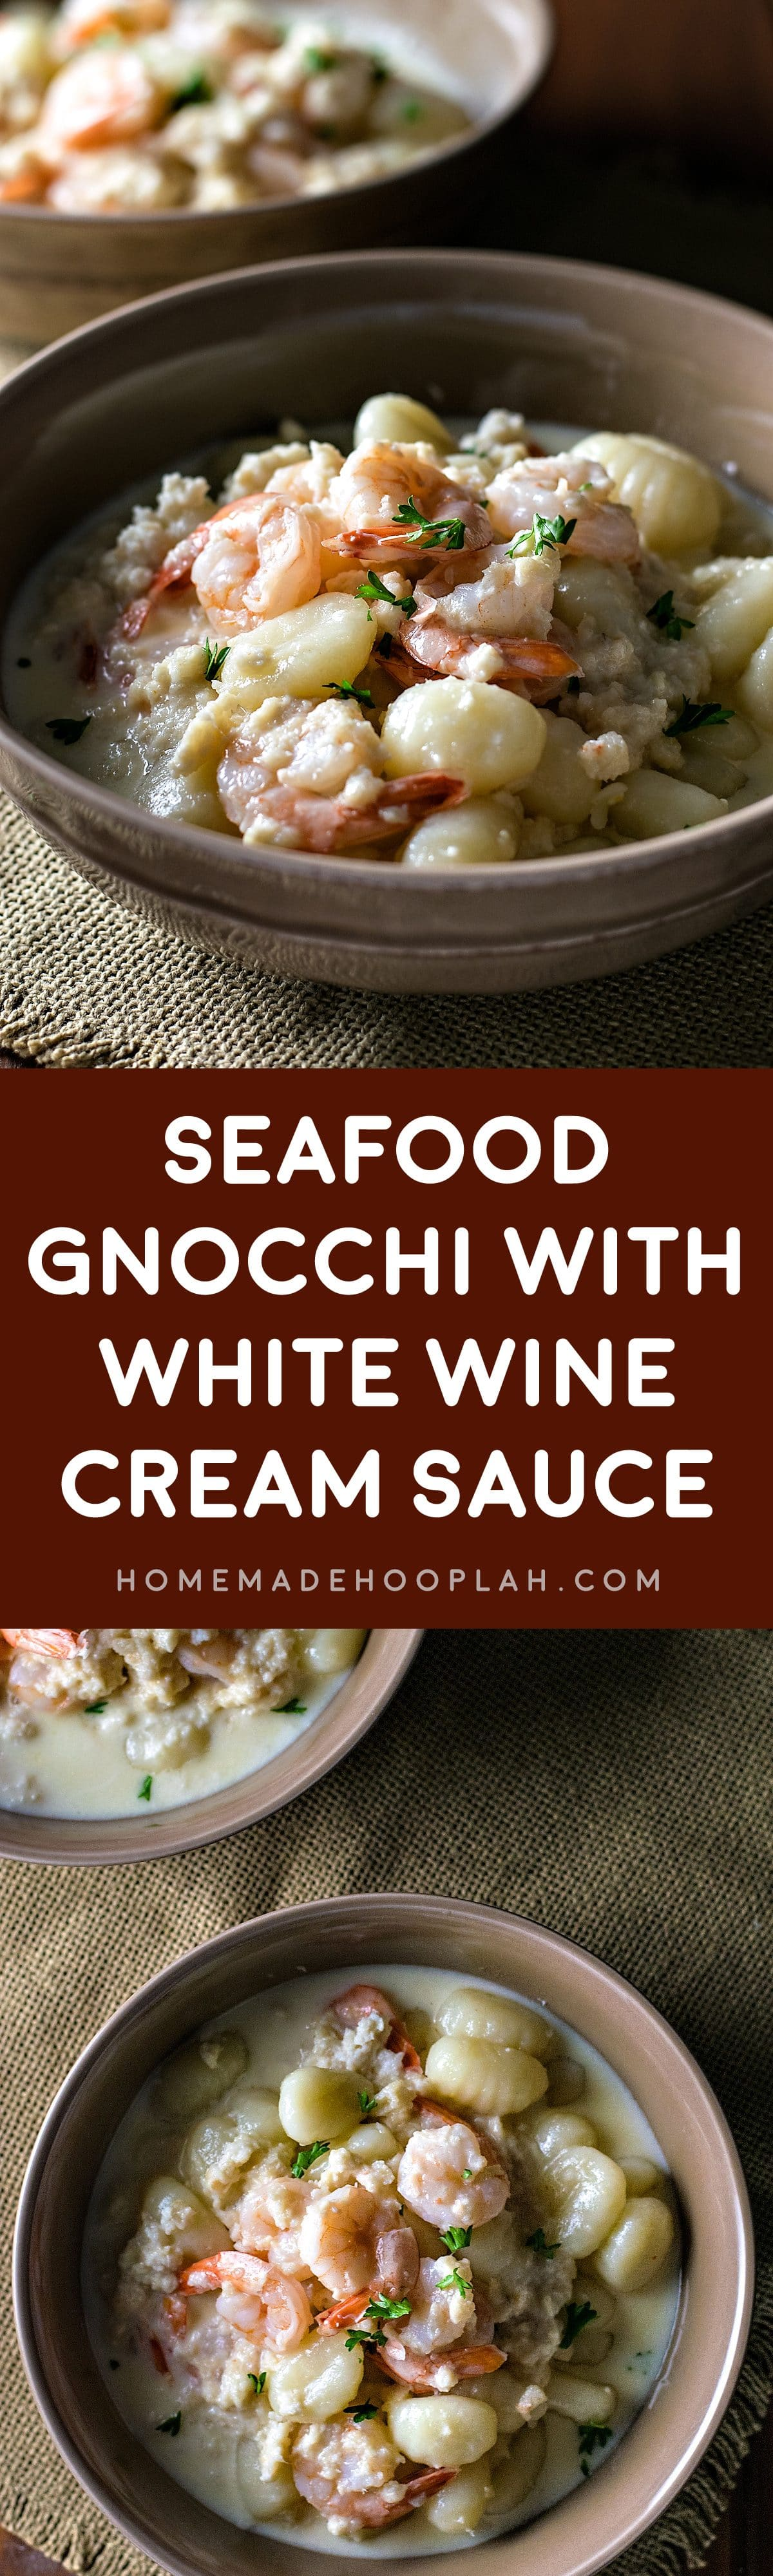 Seafood Gnocchi with White Wine Cream Sauce! Tender gnocchi, succulent shrimp, and rich crab meat all served in a creamy white wine sauce make this an easy and extremely flavorful dinner! | HomemadeHooplah.com